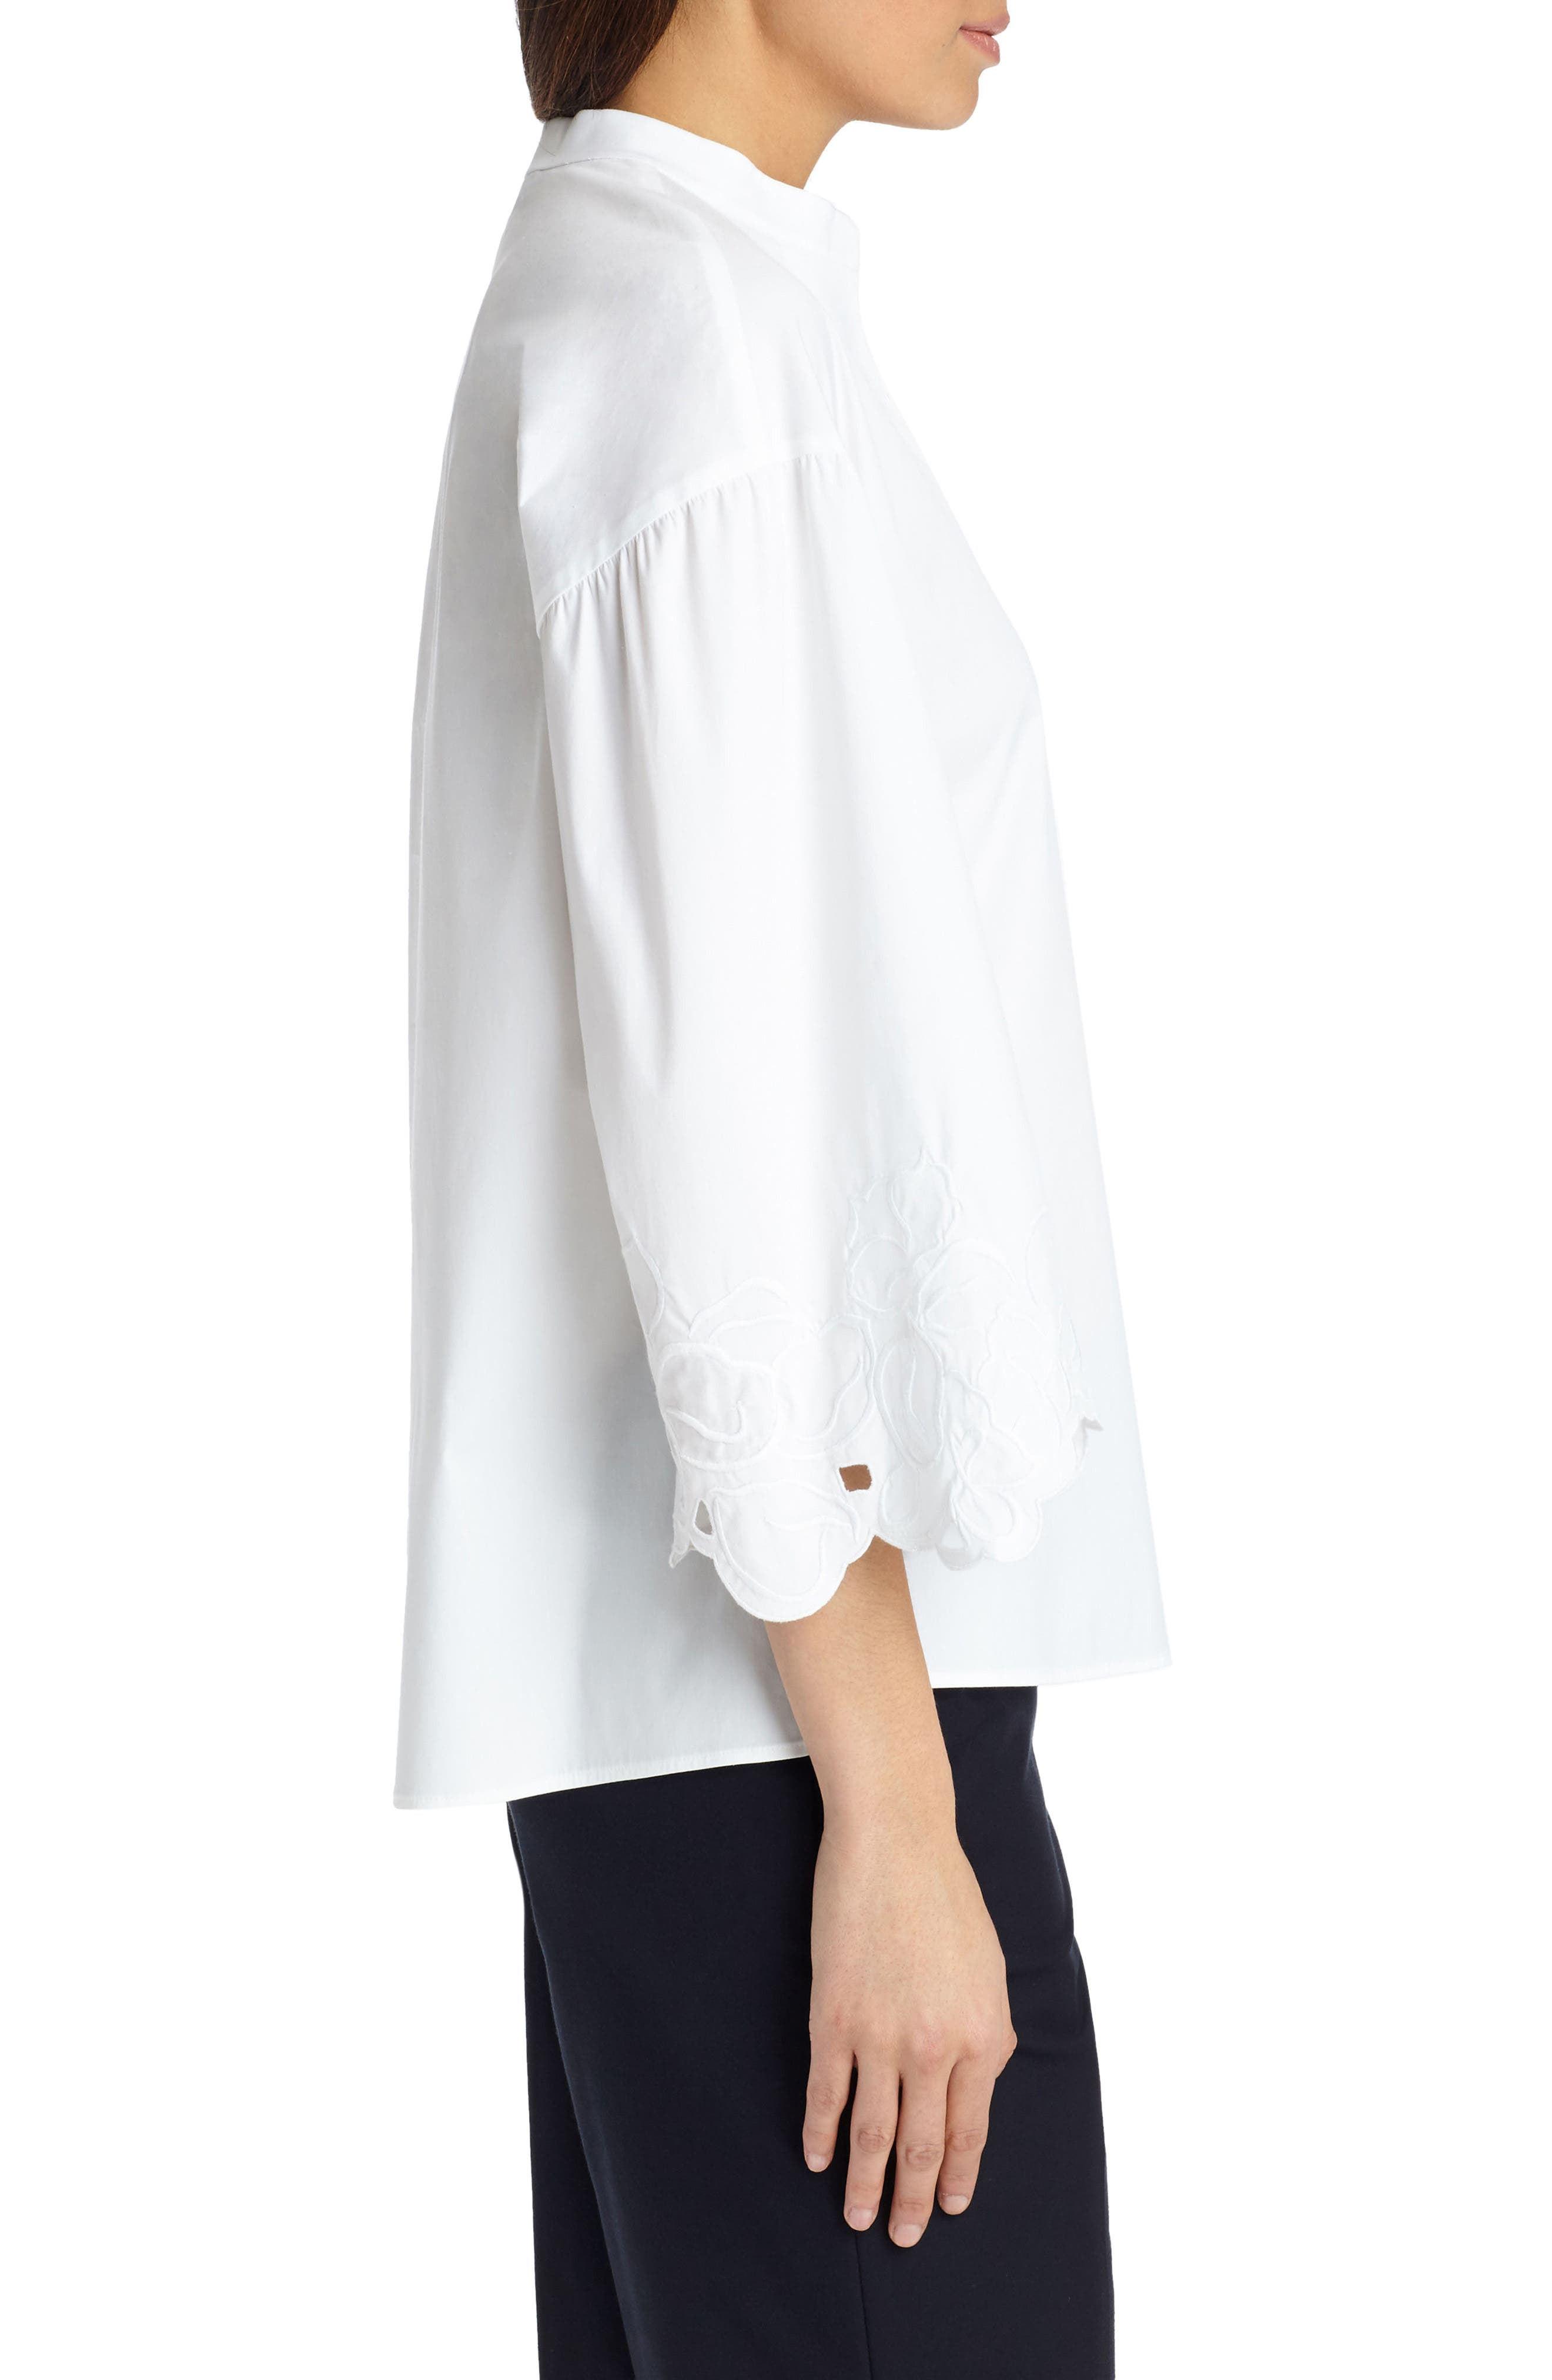 Carla Embroidered Blouse,                             Alternate thumbnail 3, color,                             White